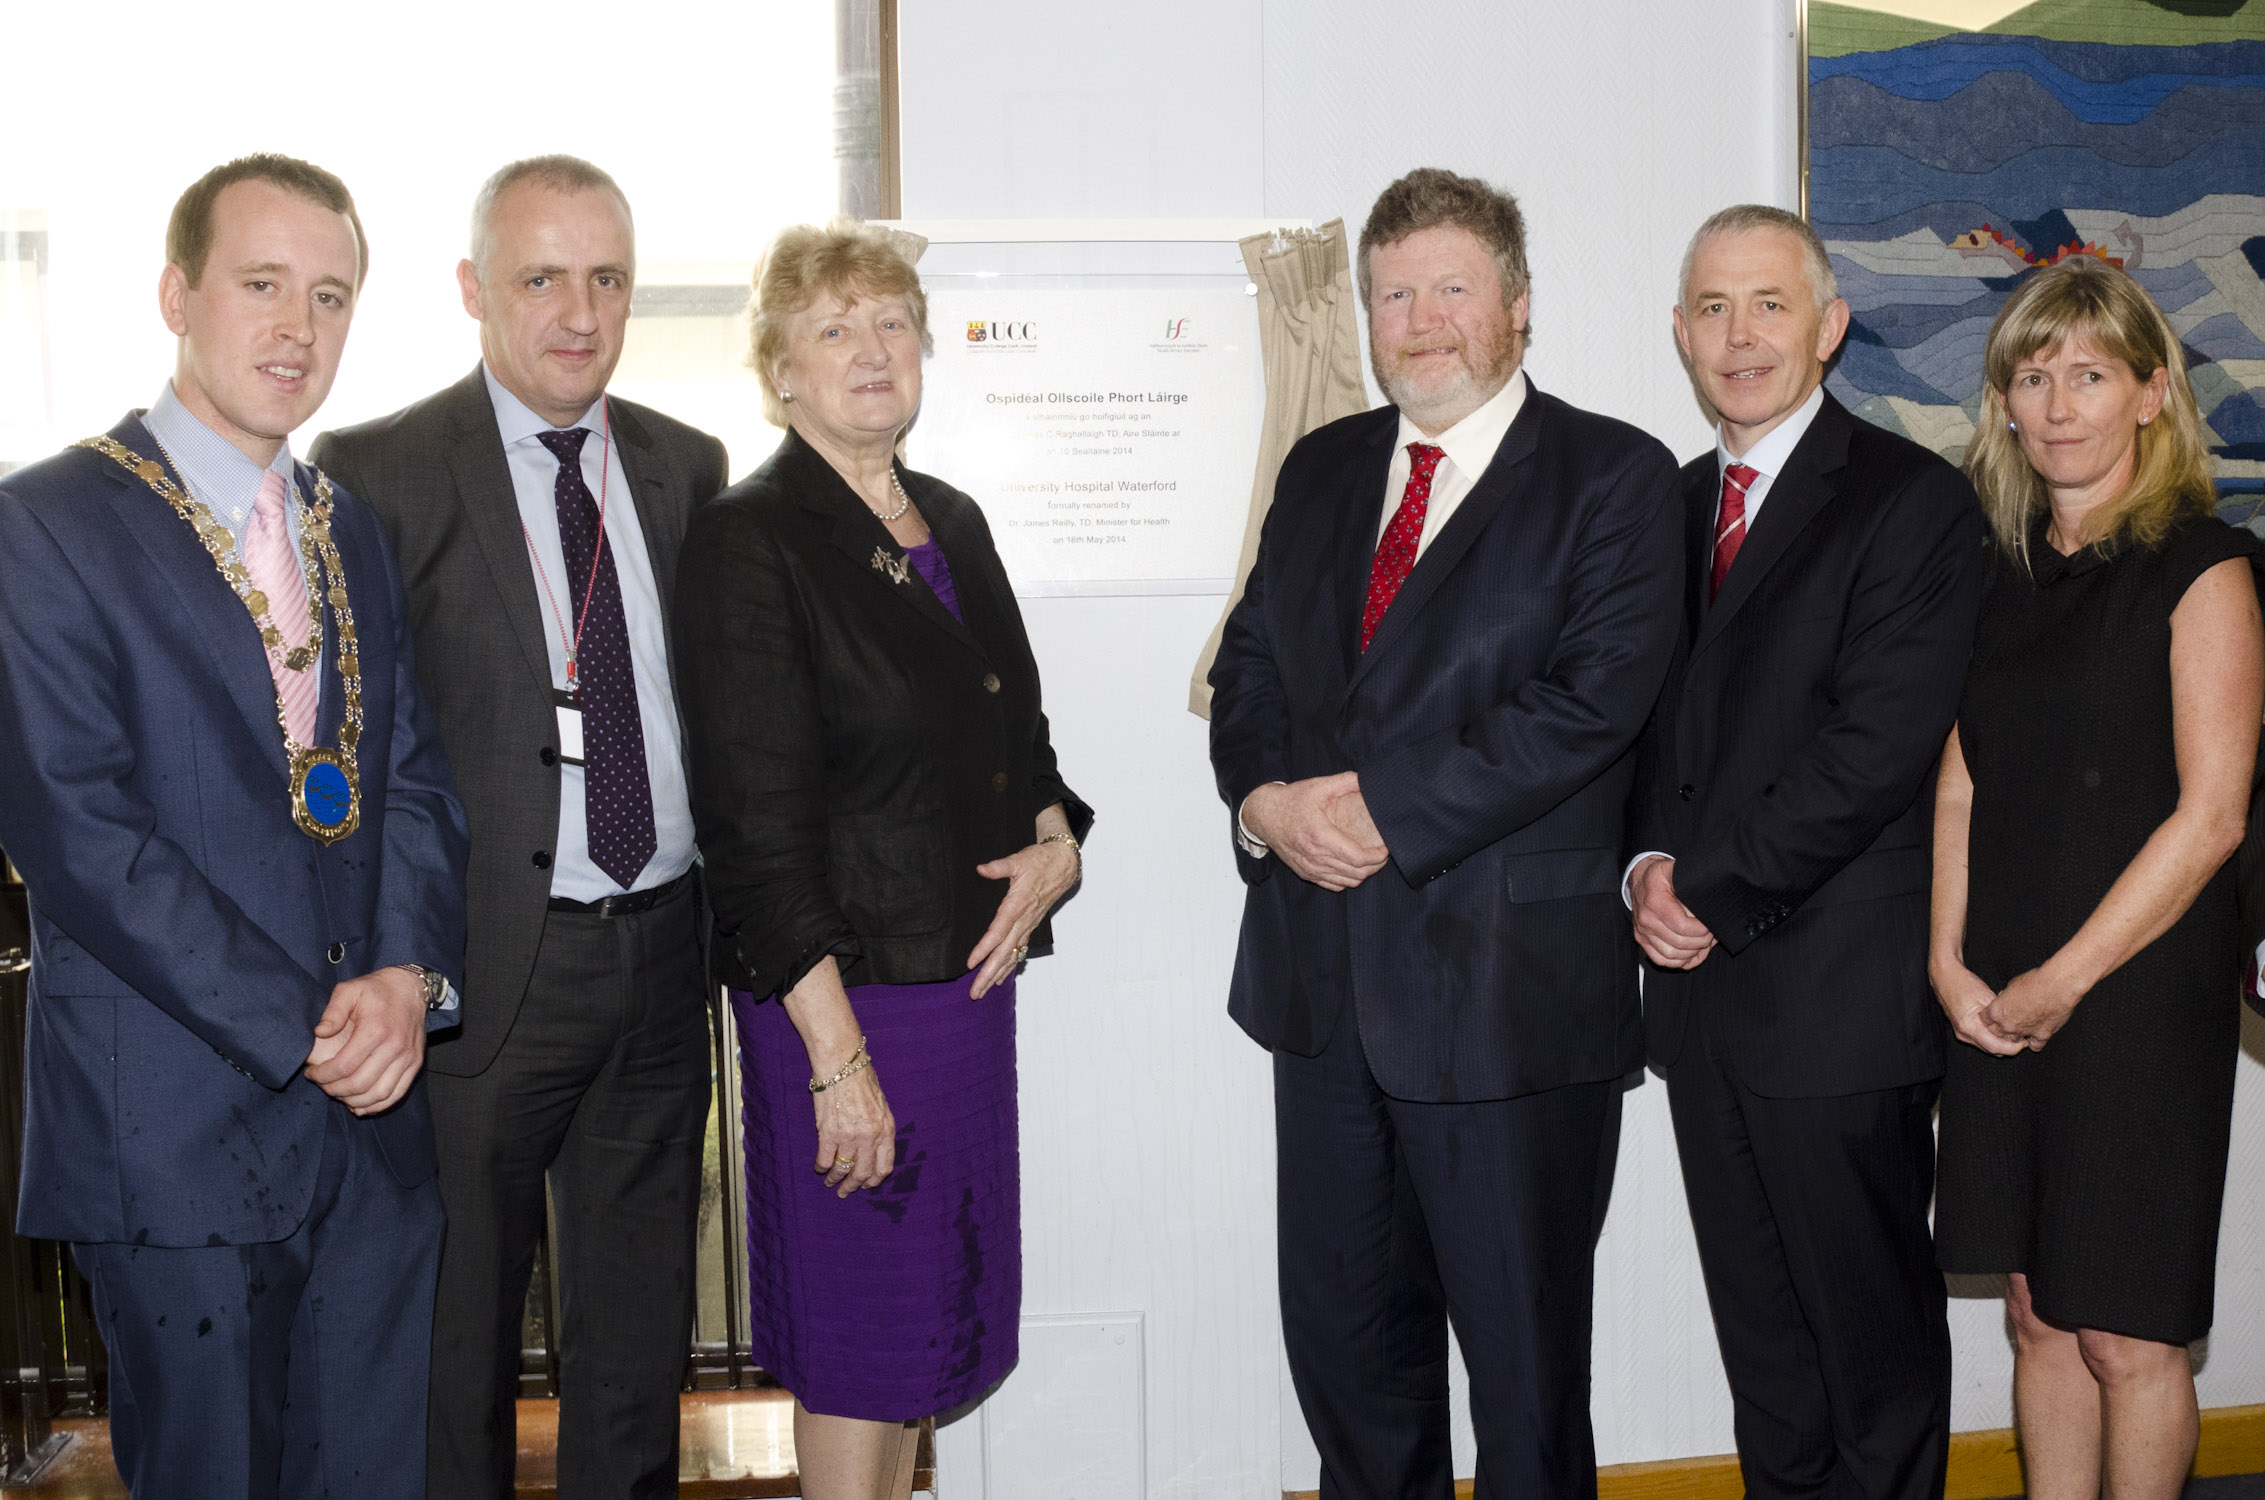 Formal renaming of University Hospital Waterford